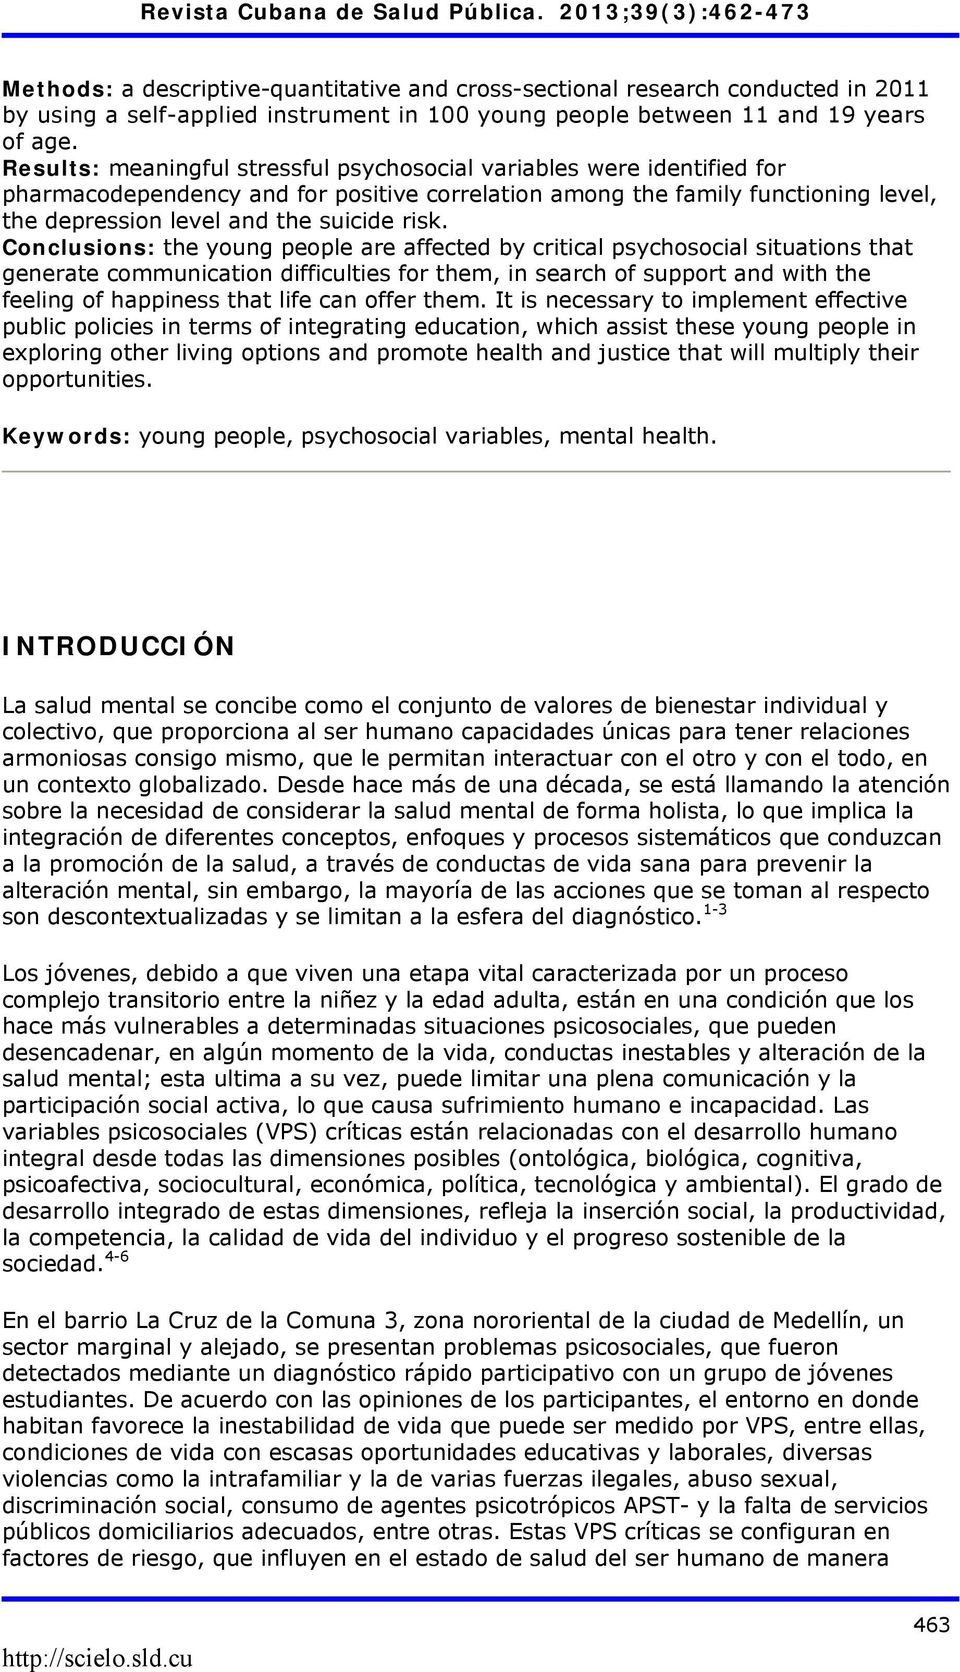 Conclusions: the young people are affected by critical psychosocial situations that generate communication difficulties for them, in search of support and with the feeling of happiness that life can